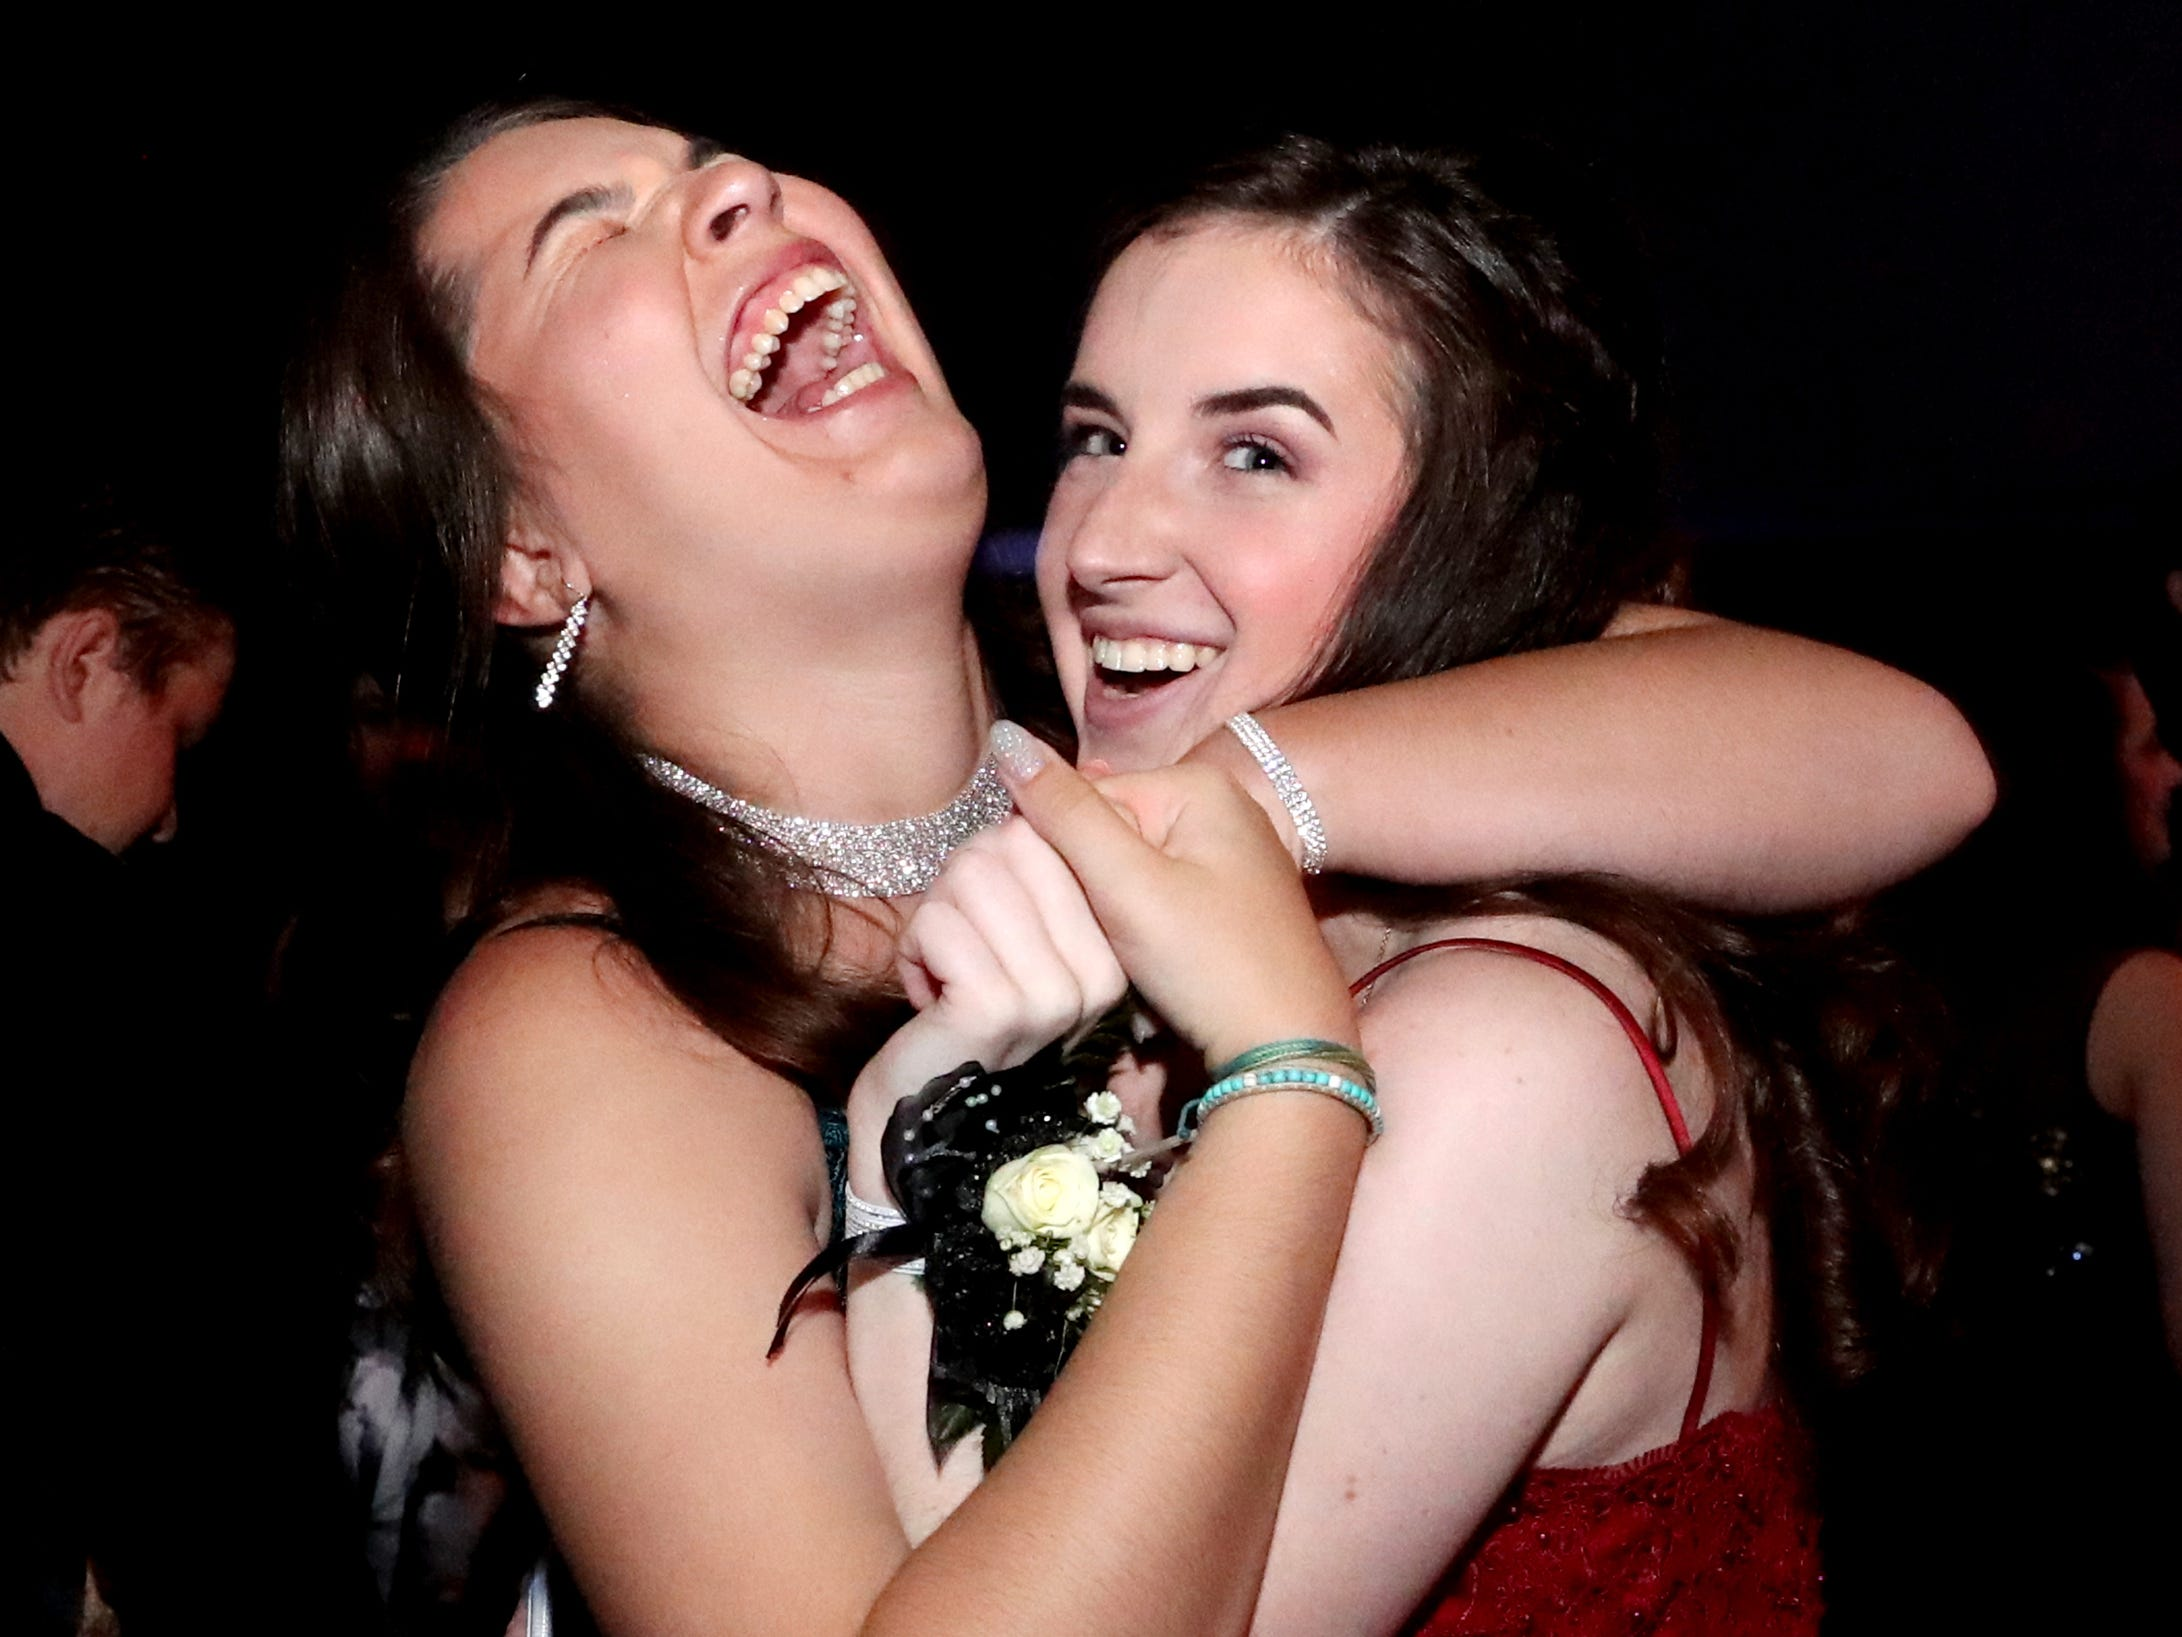 Anna Mincey, left and April Phillips, right have fun at Blackman's prom held on Friday April 12, 2019, at MTSU.